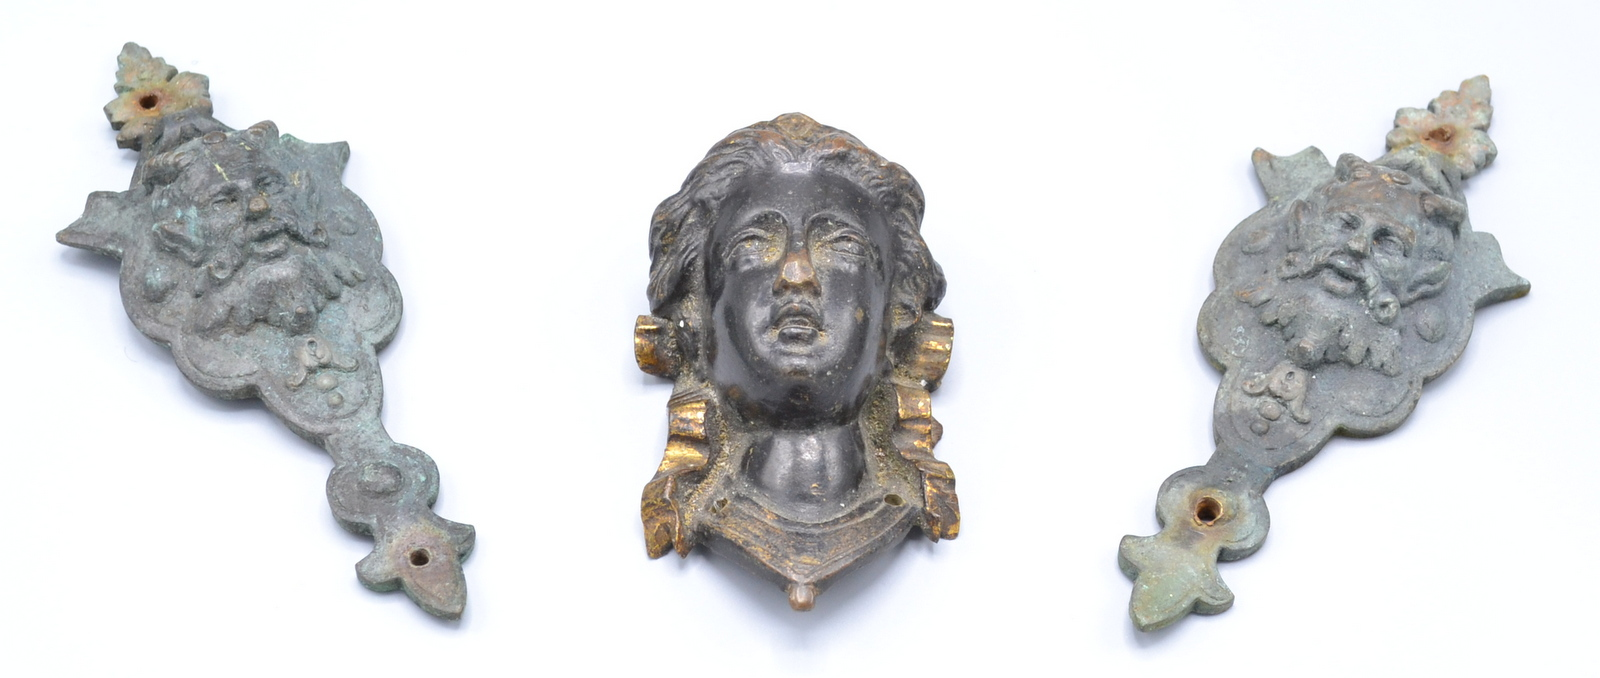 Lot 23 - A pair of gilt metal satyr cast furniture mounts and one other similar mount cast as the head of